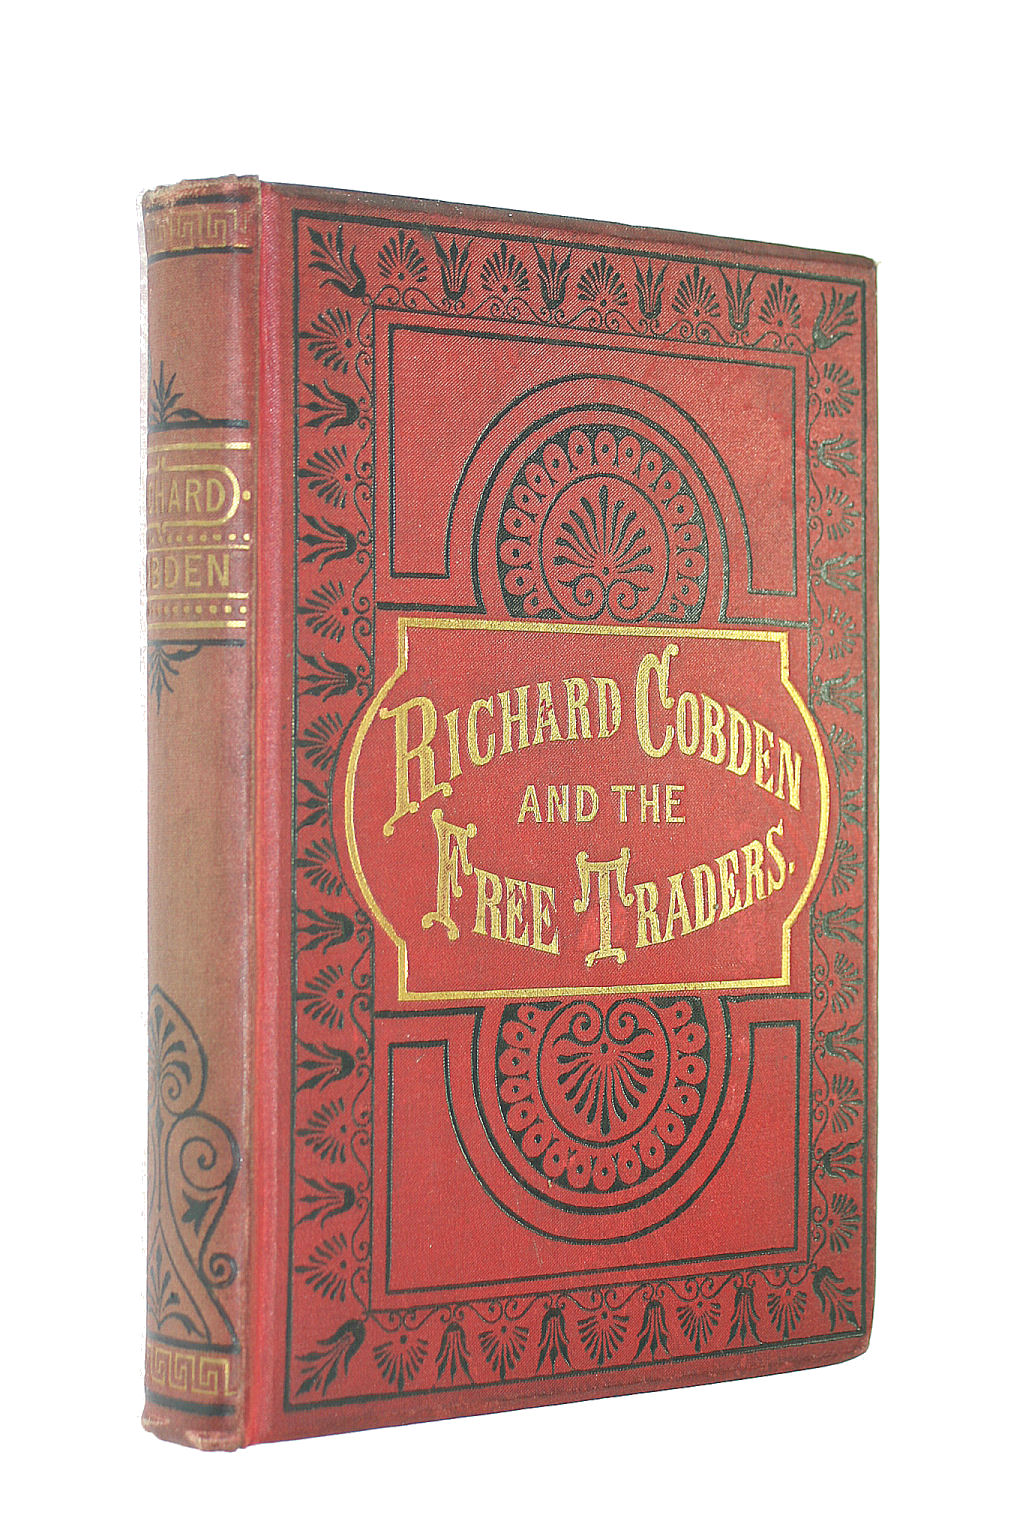 Image for Richard Cobden and the Free Traders / by Lewis Apjohn